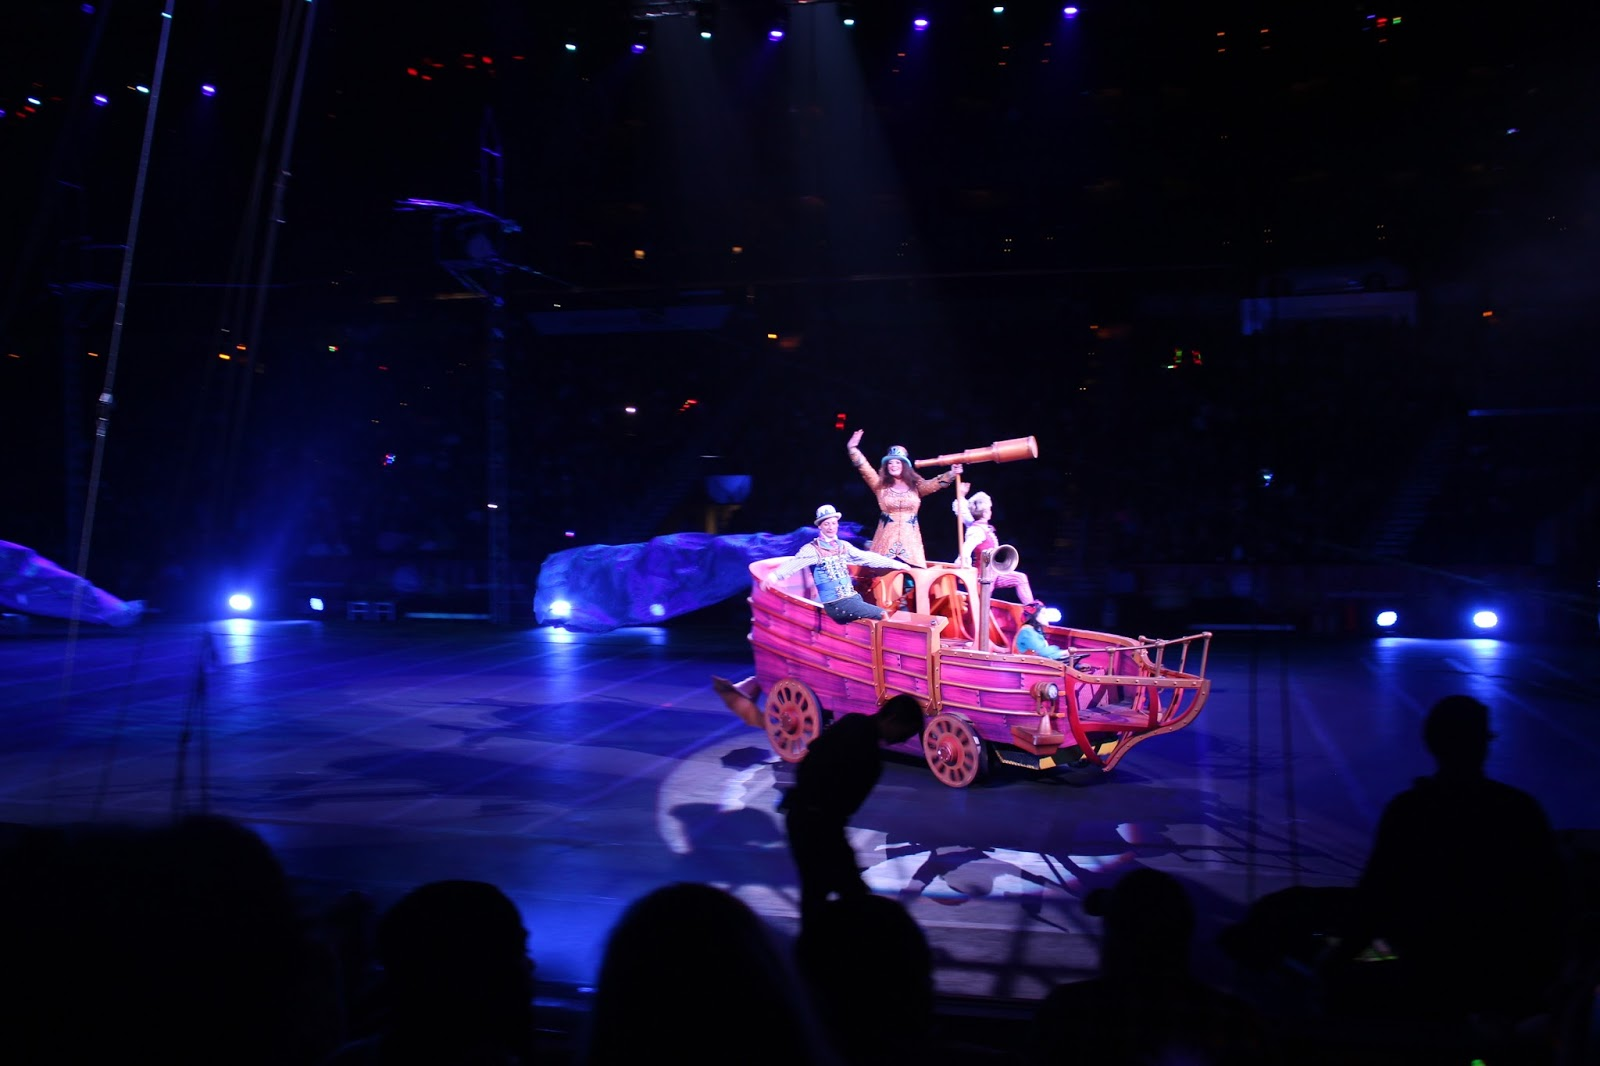 ringling brothers, circus, greatest show on earth, barnum bailey, atlanta